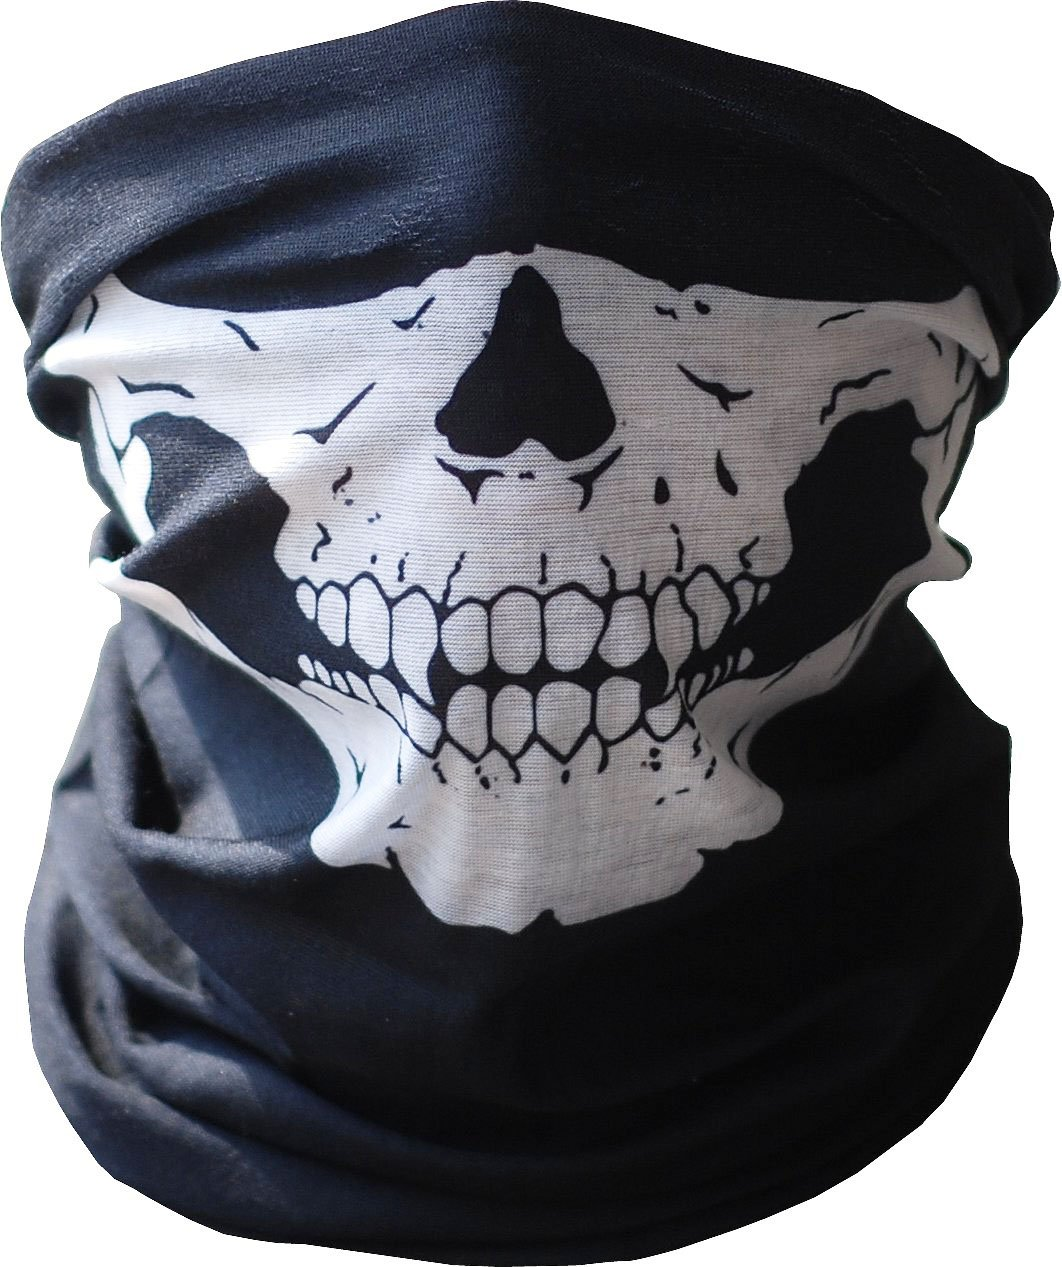 ThreeH Skull Face Mask Seamless Windproof Warm Magic Scarf Riding Hiking Outdoor Sports Mask FM111